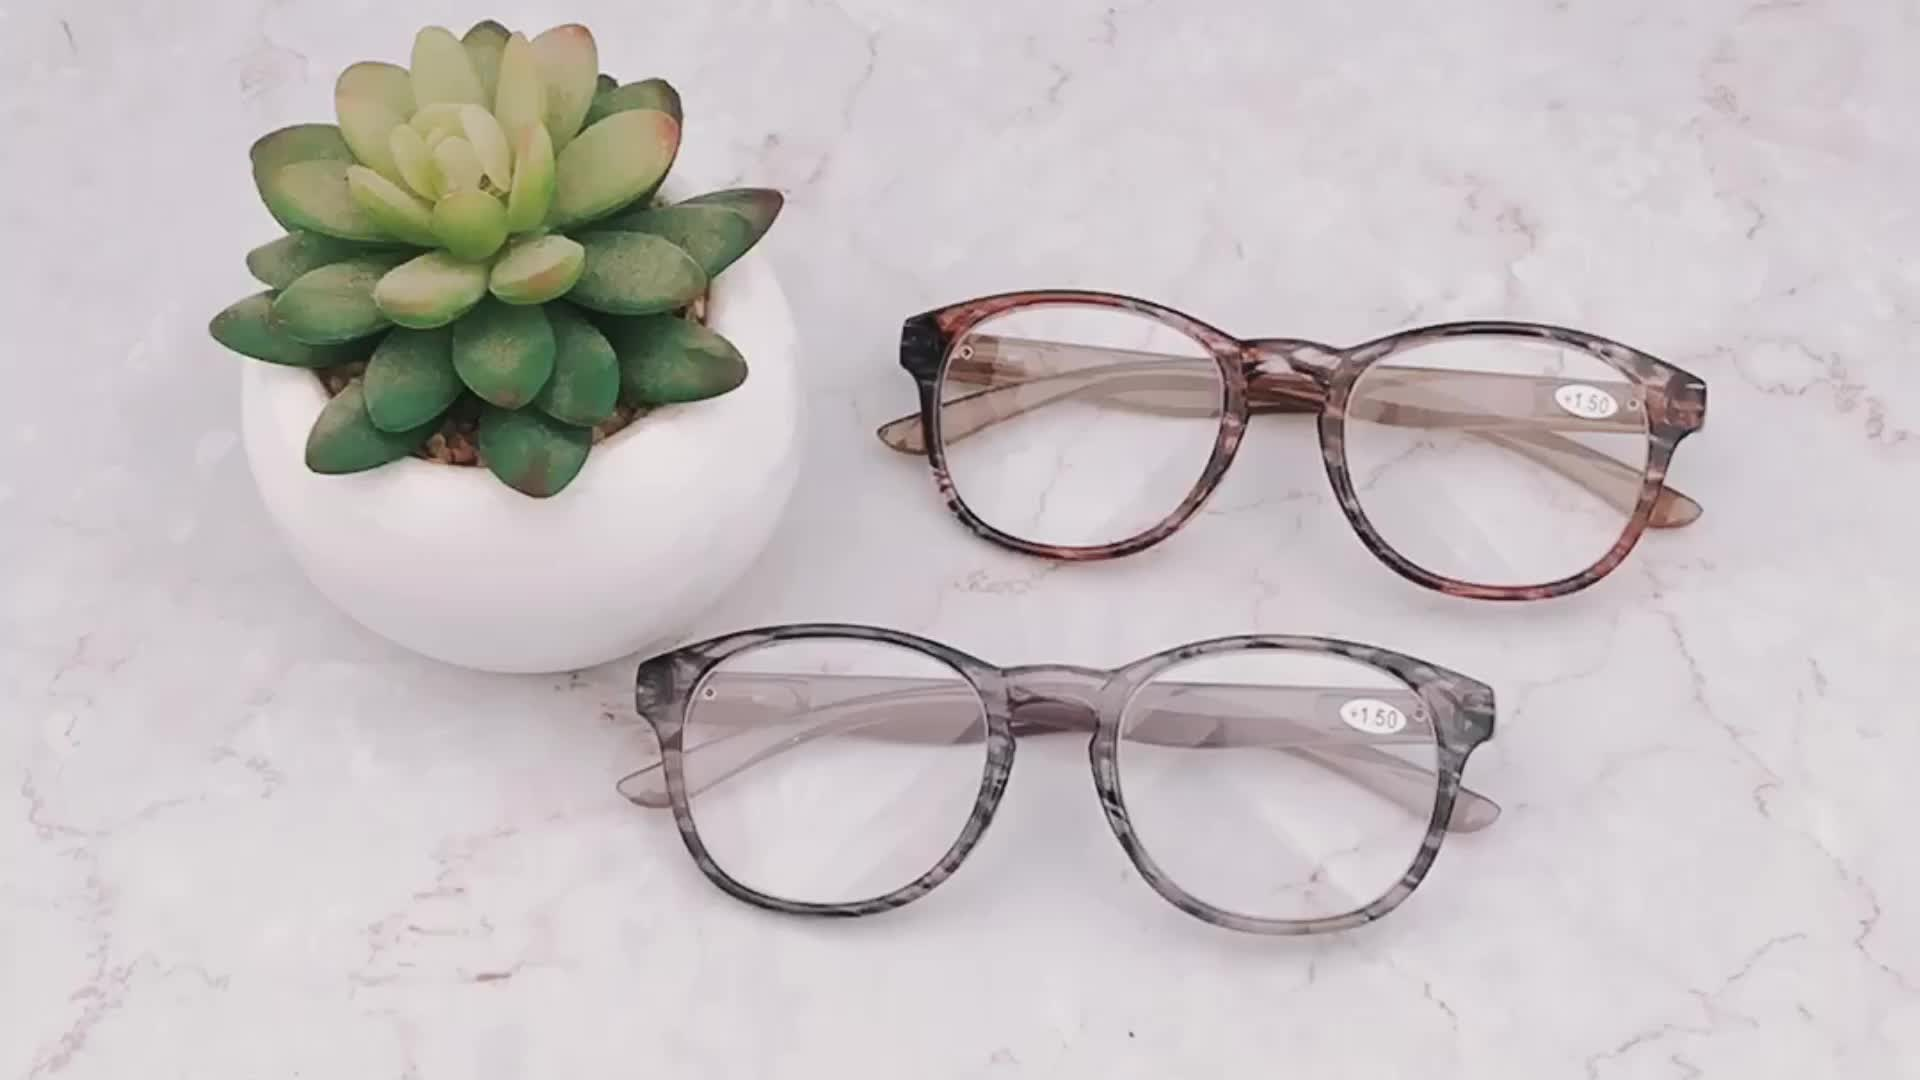 2019 Fashion Cateye Shape Reading Glasses with Wide Temple